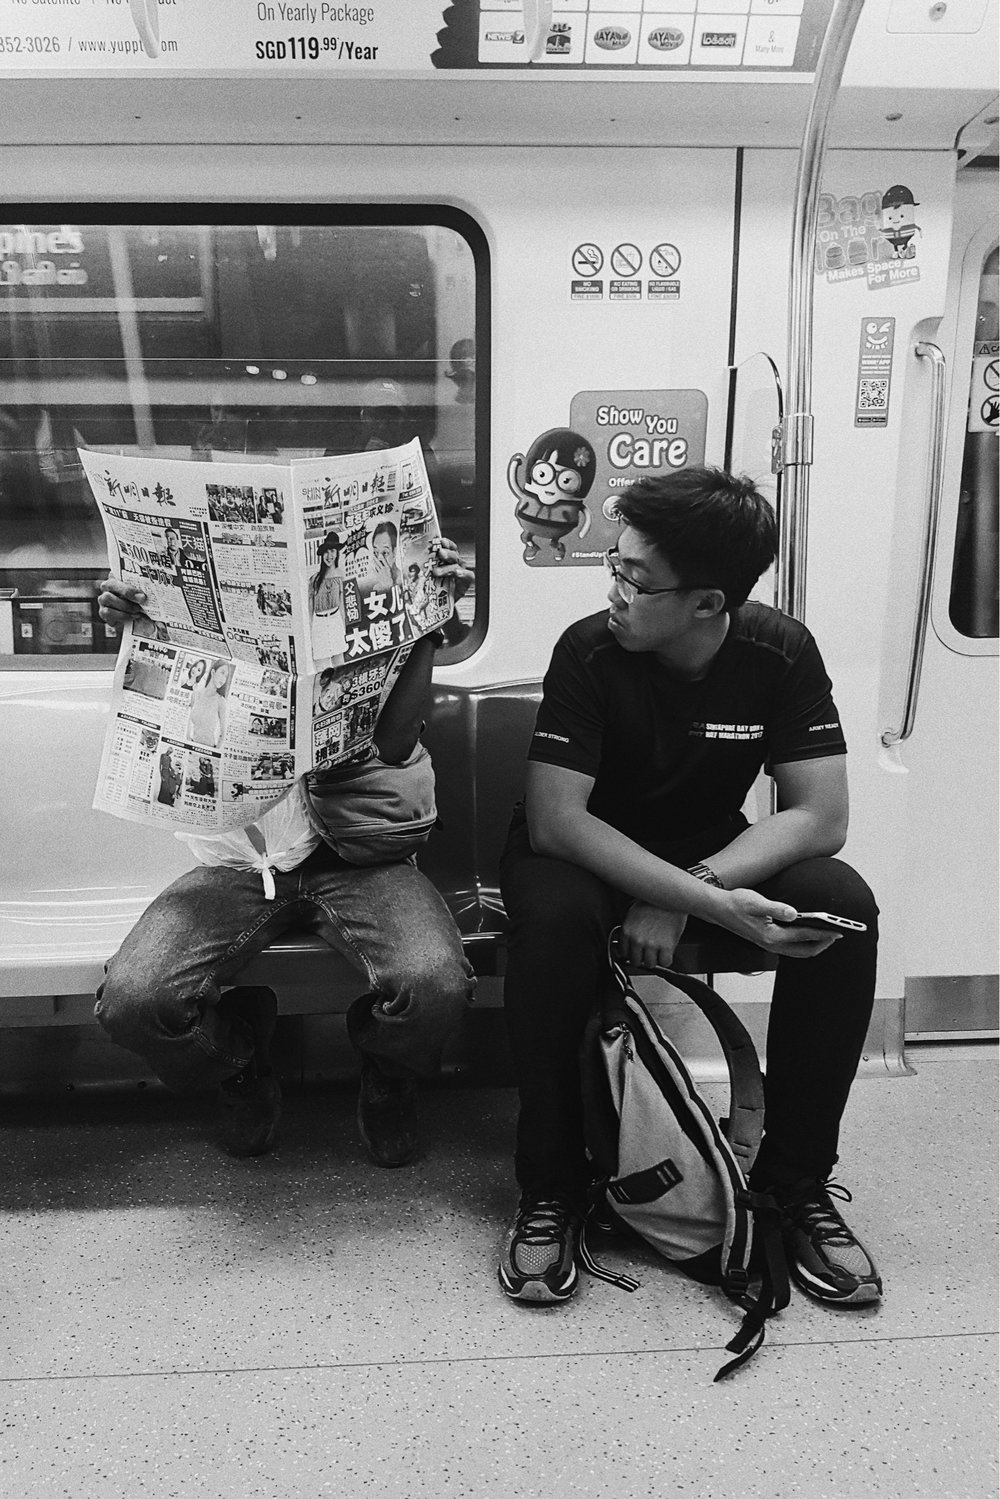 Younger guy reads the newspaper that the older guy is holding up for himself